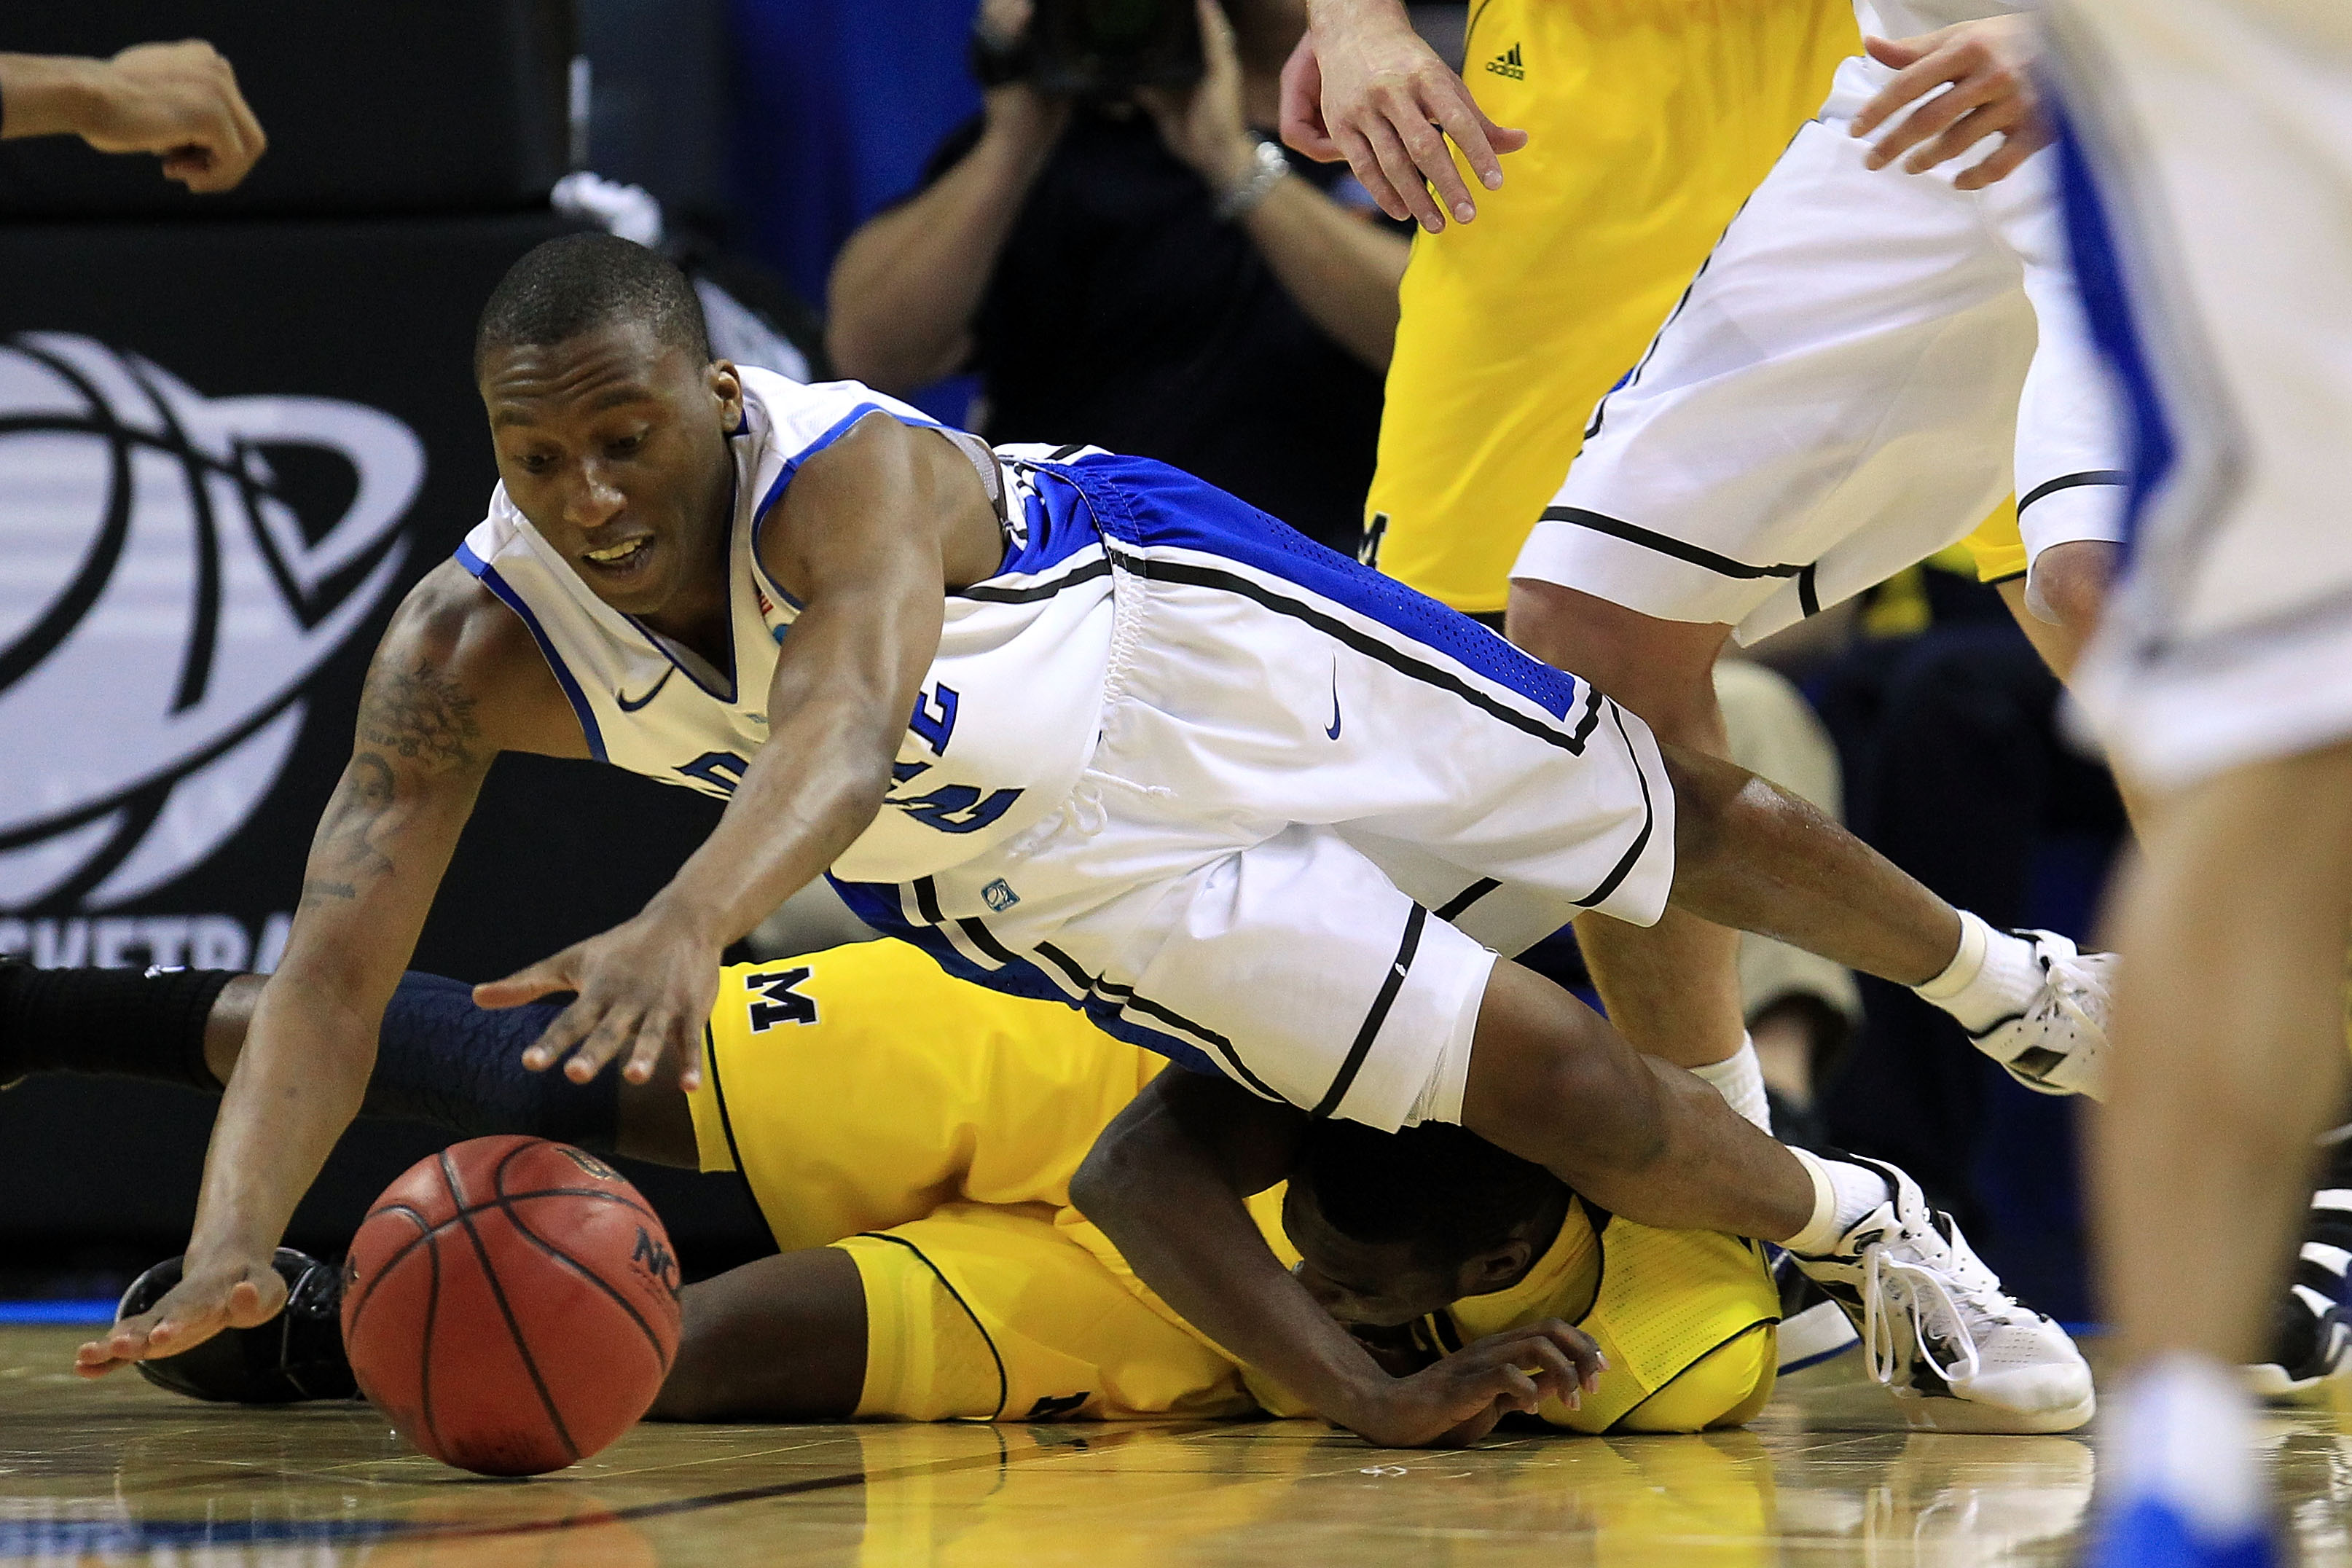 CHARLOTTE, NC - MARCH 20:  Nolan Smith #2 of the Duke Blue Devils dives for the ball over Tim Hardaway Jr. #10 of the Michigan Wolverines in the first half during the third round of the 2011 NCAA men's basketball tournament at Time Warner Cable Arena on M